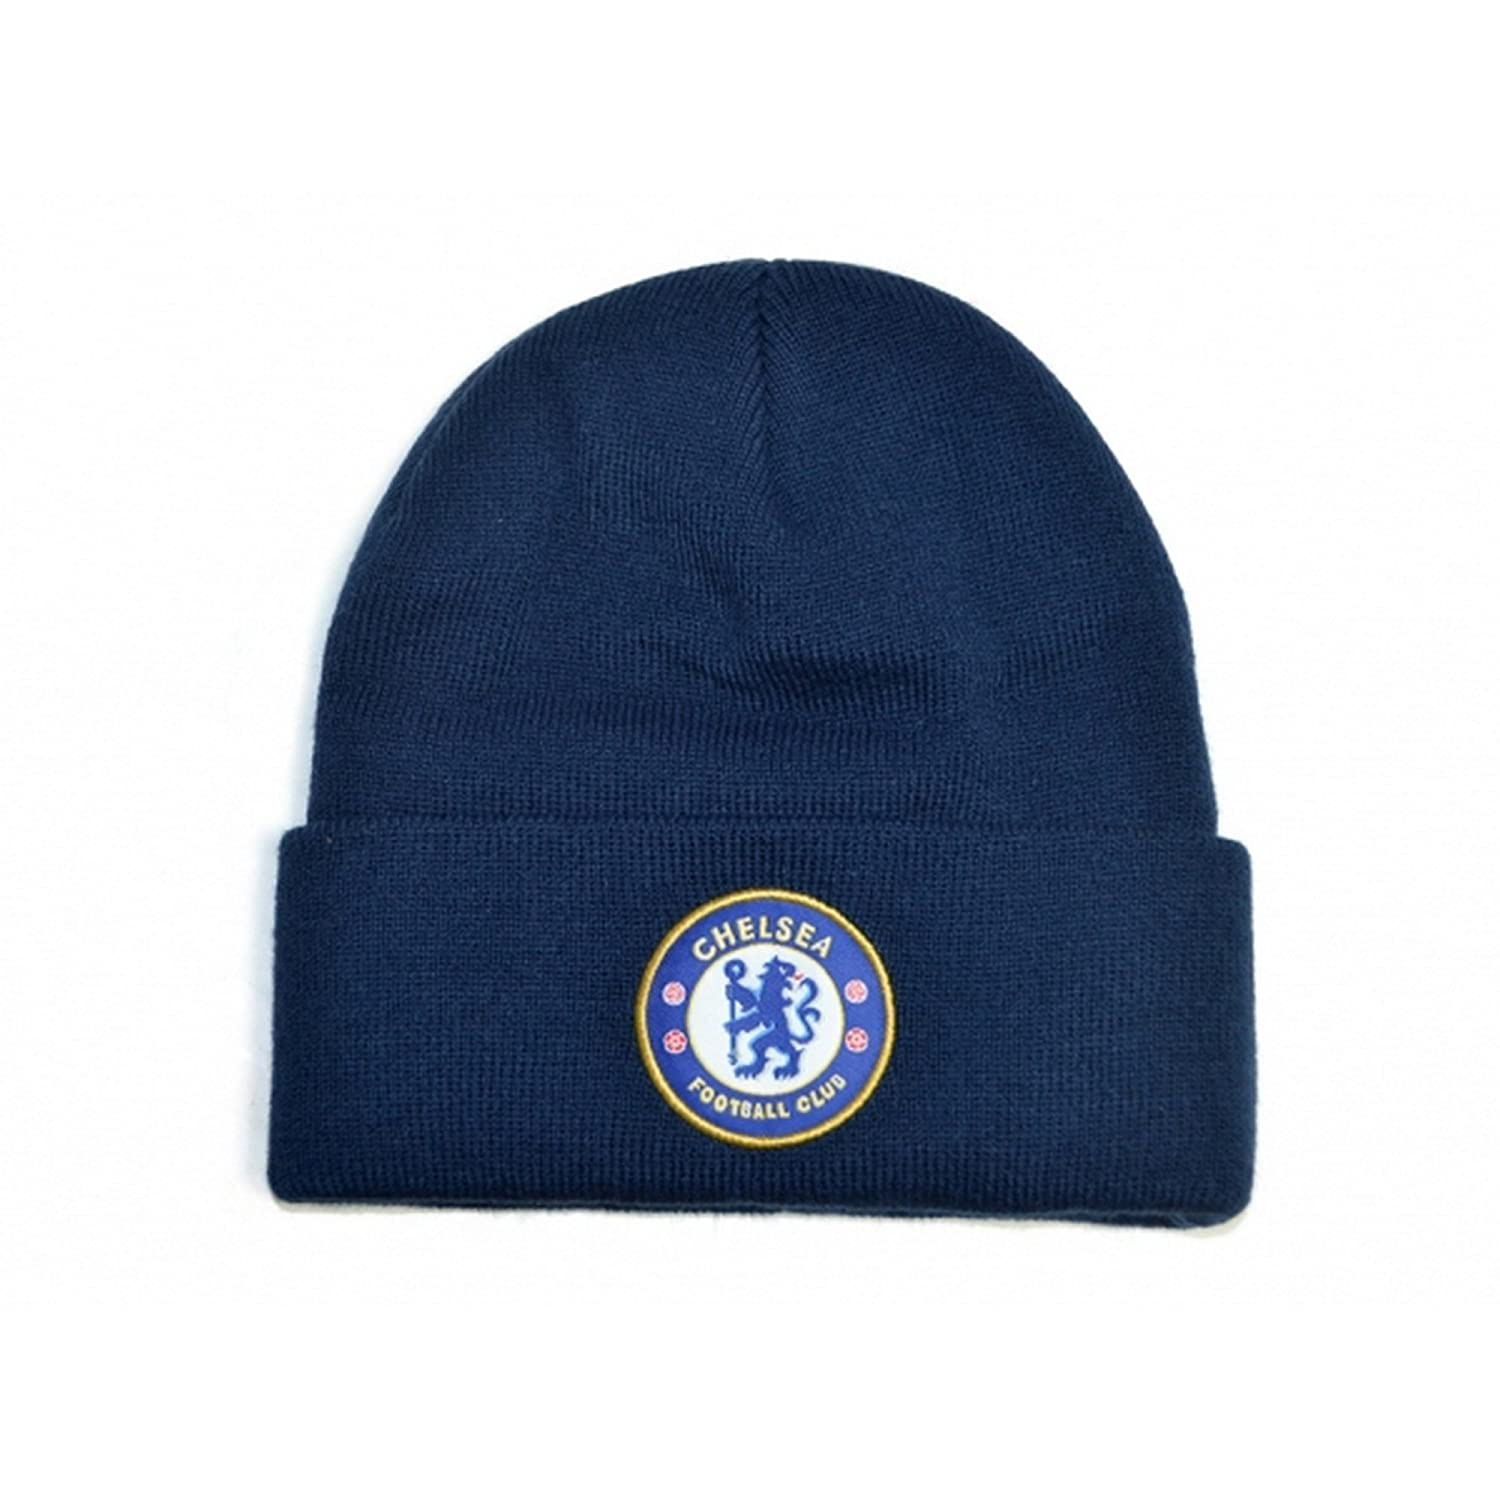 Chelsea FC Official Football Knitted Crest Turn Up Beanie Hat